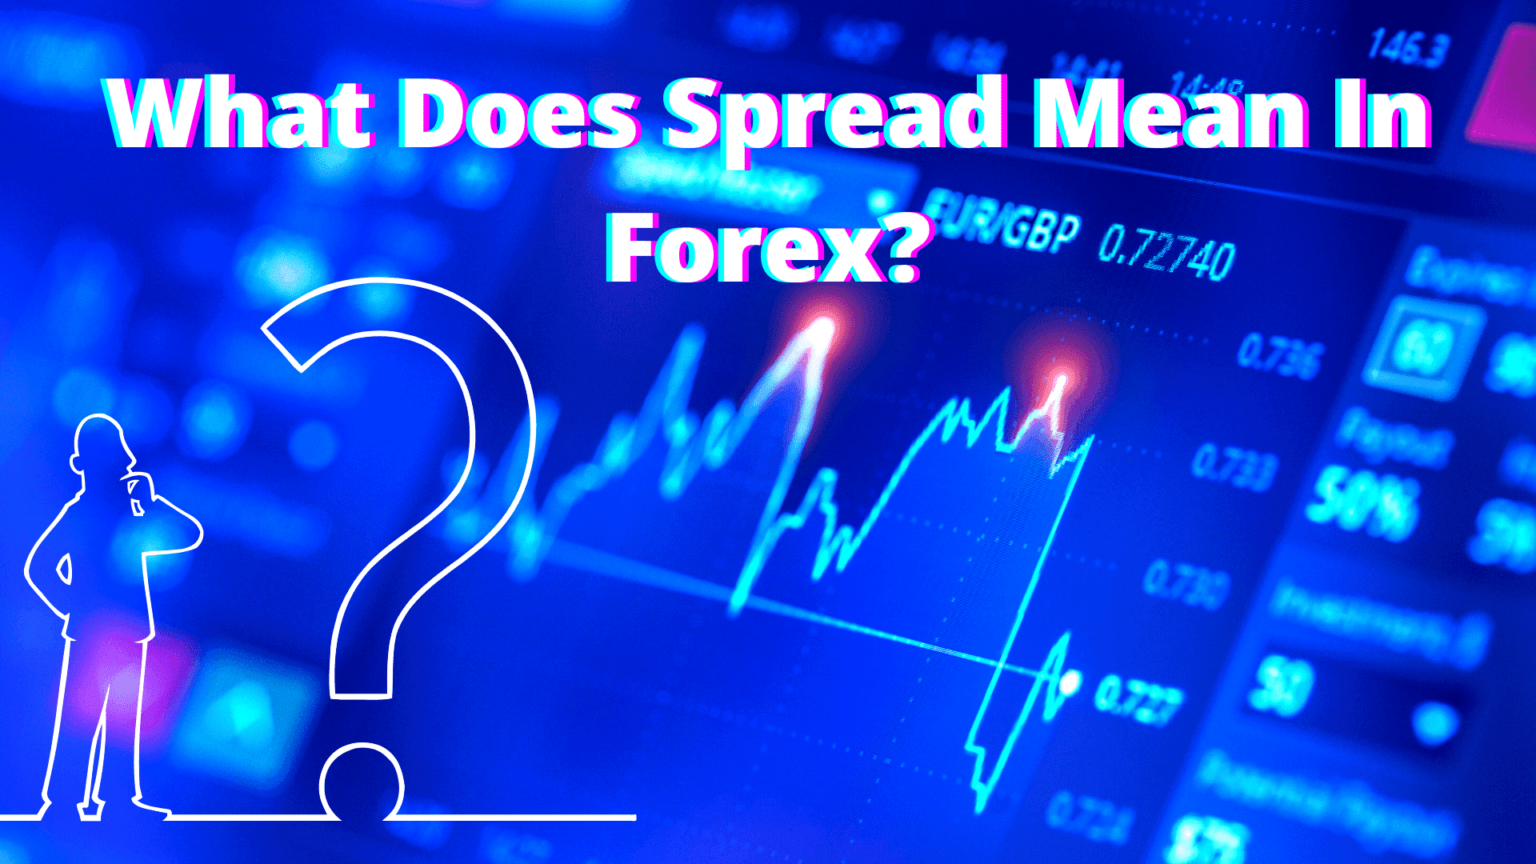 What Does Spread Mean In Forex